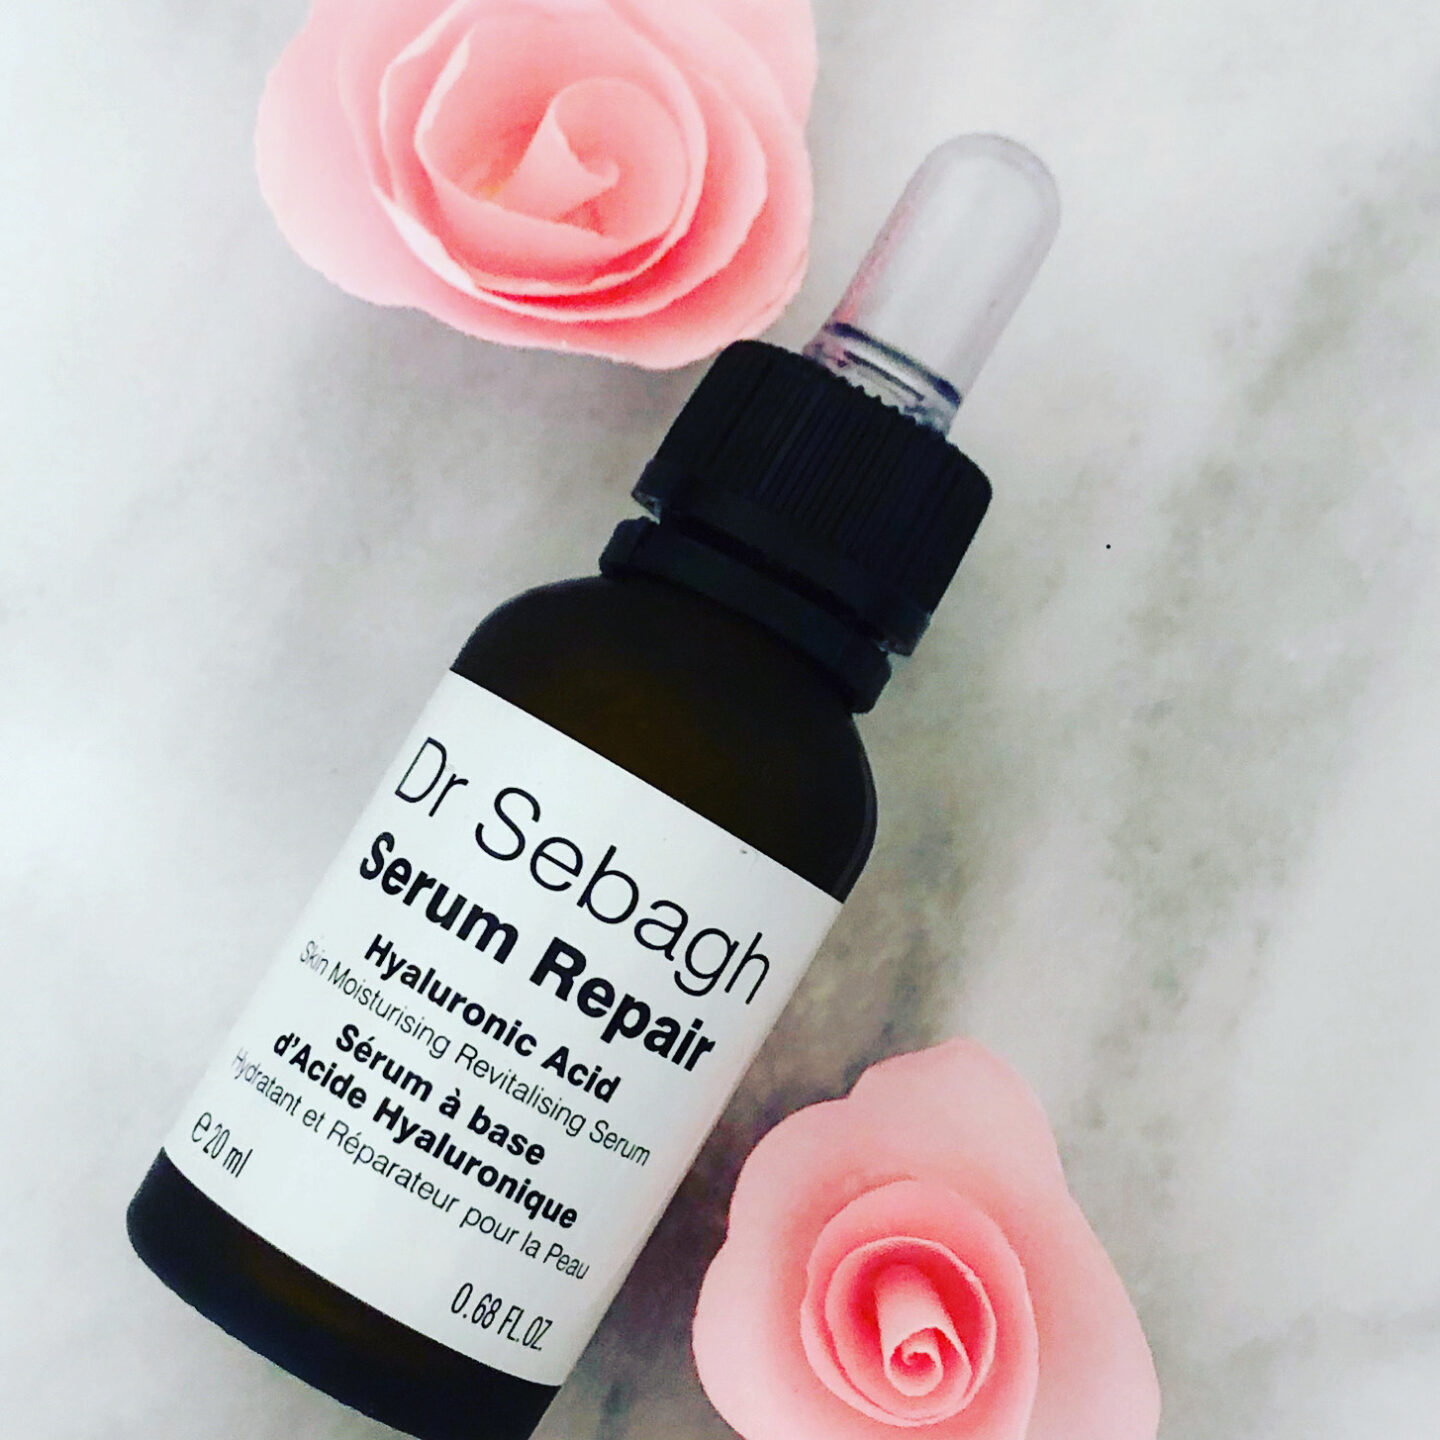 Serum Repair by Dr Sebagh, It's Cult for a Reason.